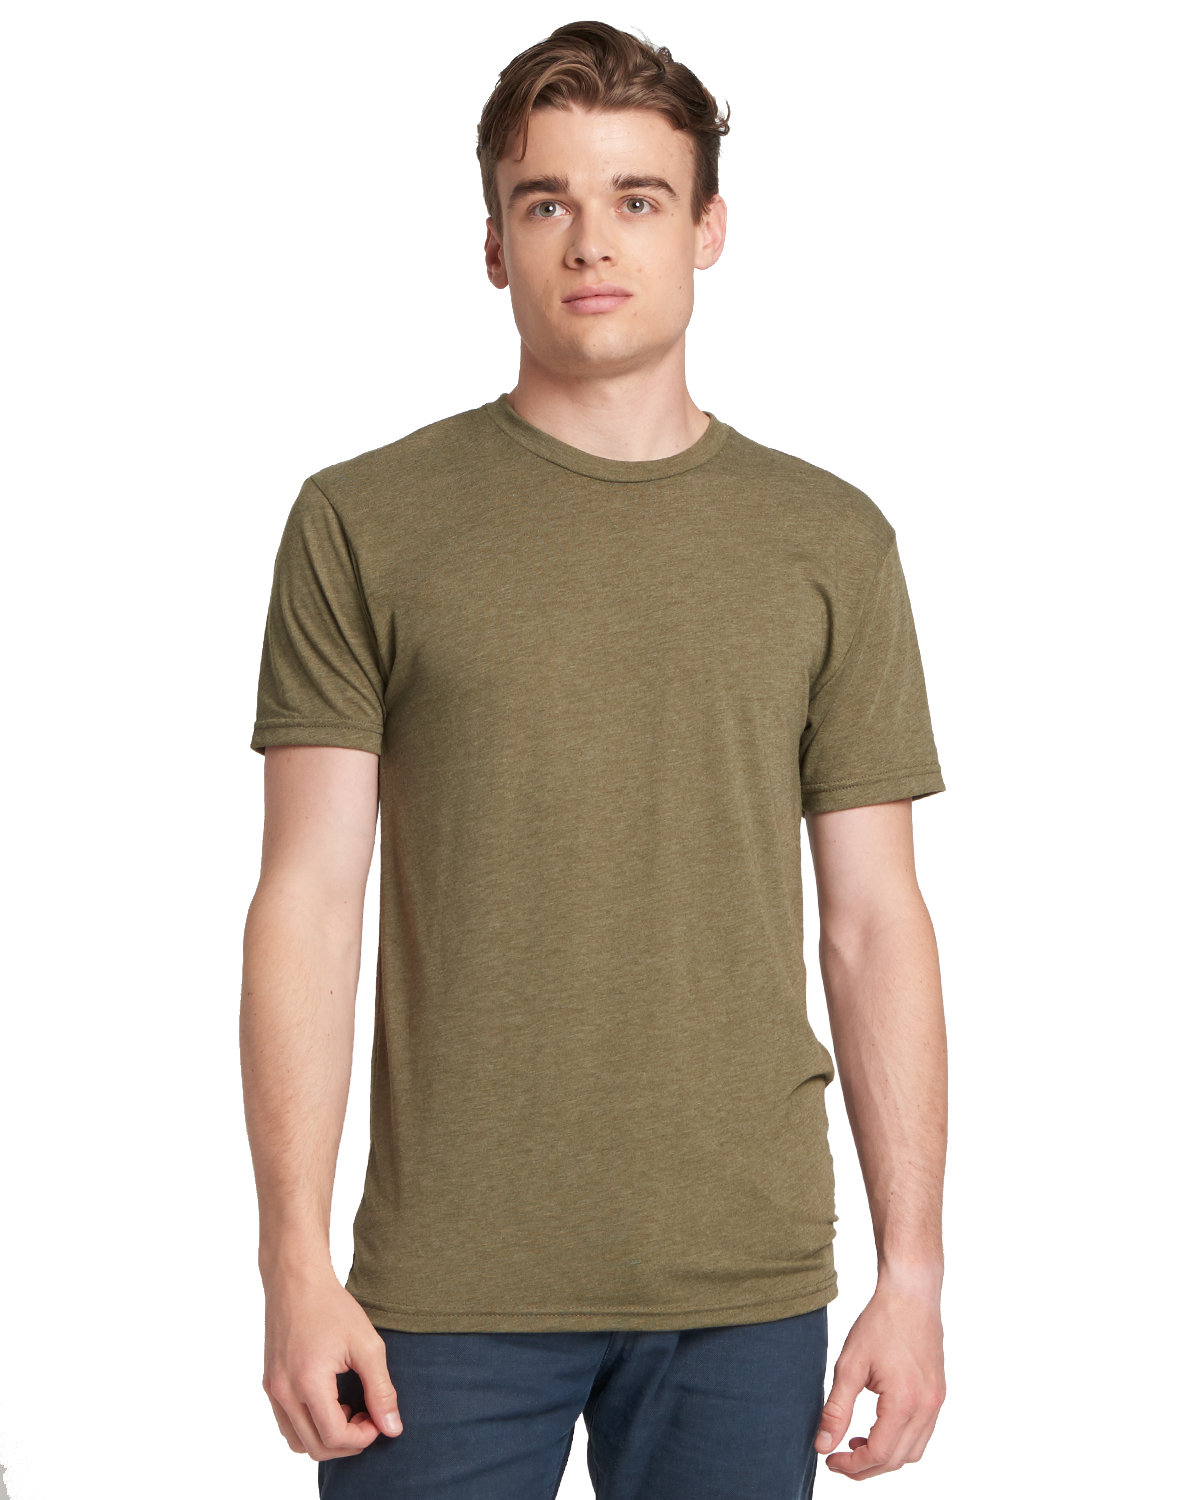 Next Level Men's Made in USA Triblend T-Shirt MILITARY GREEN